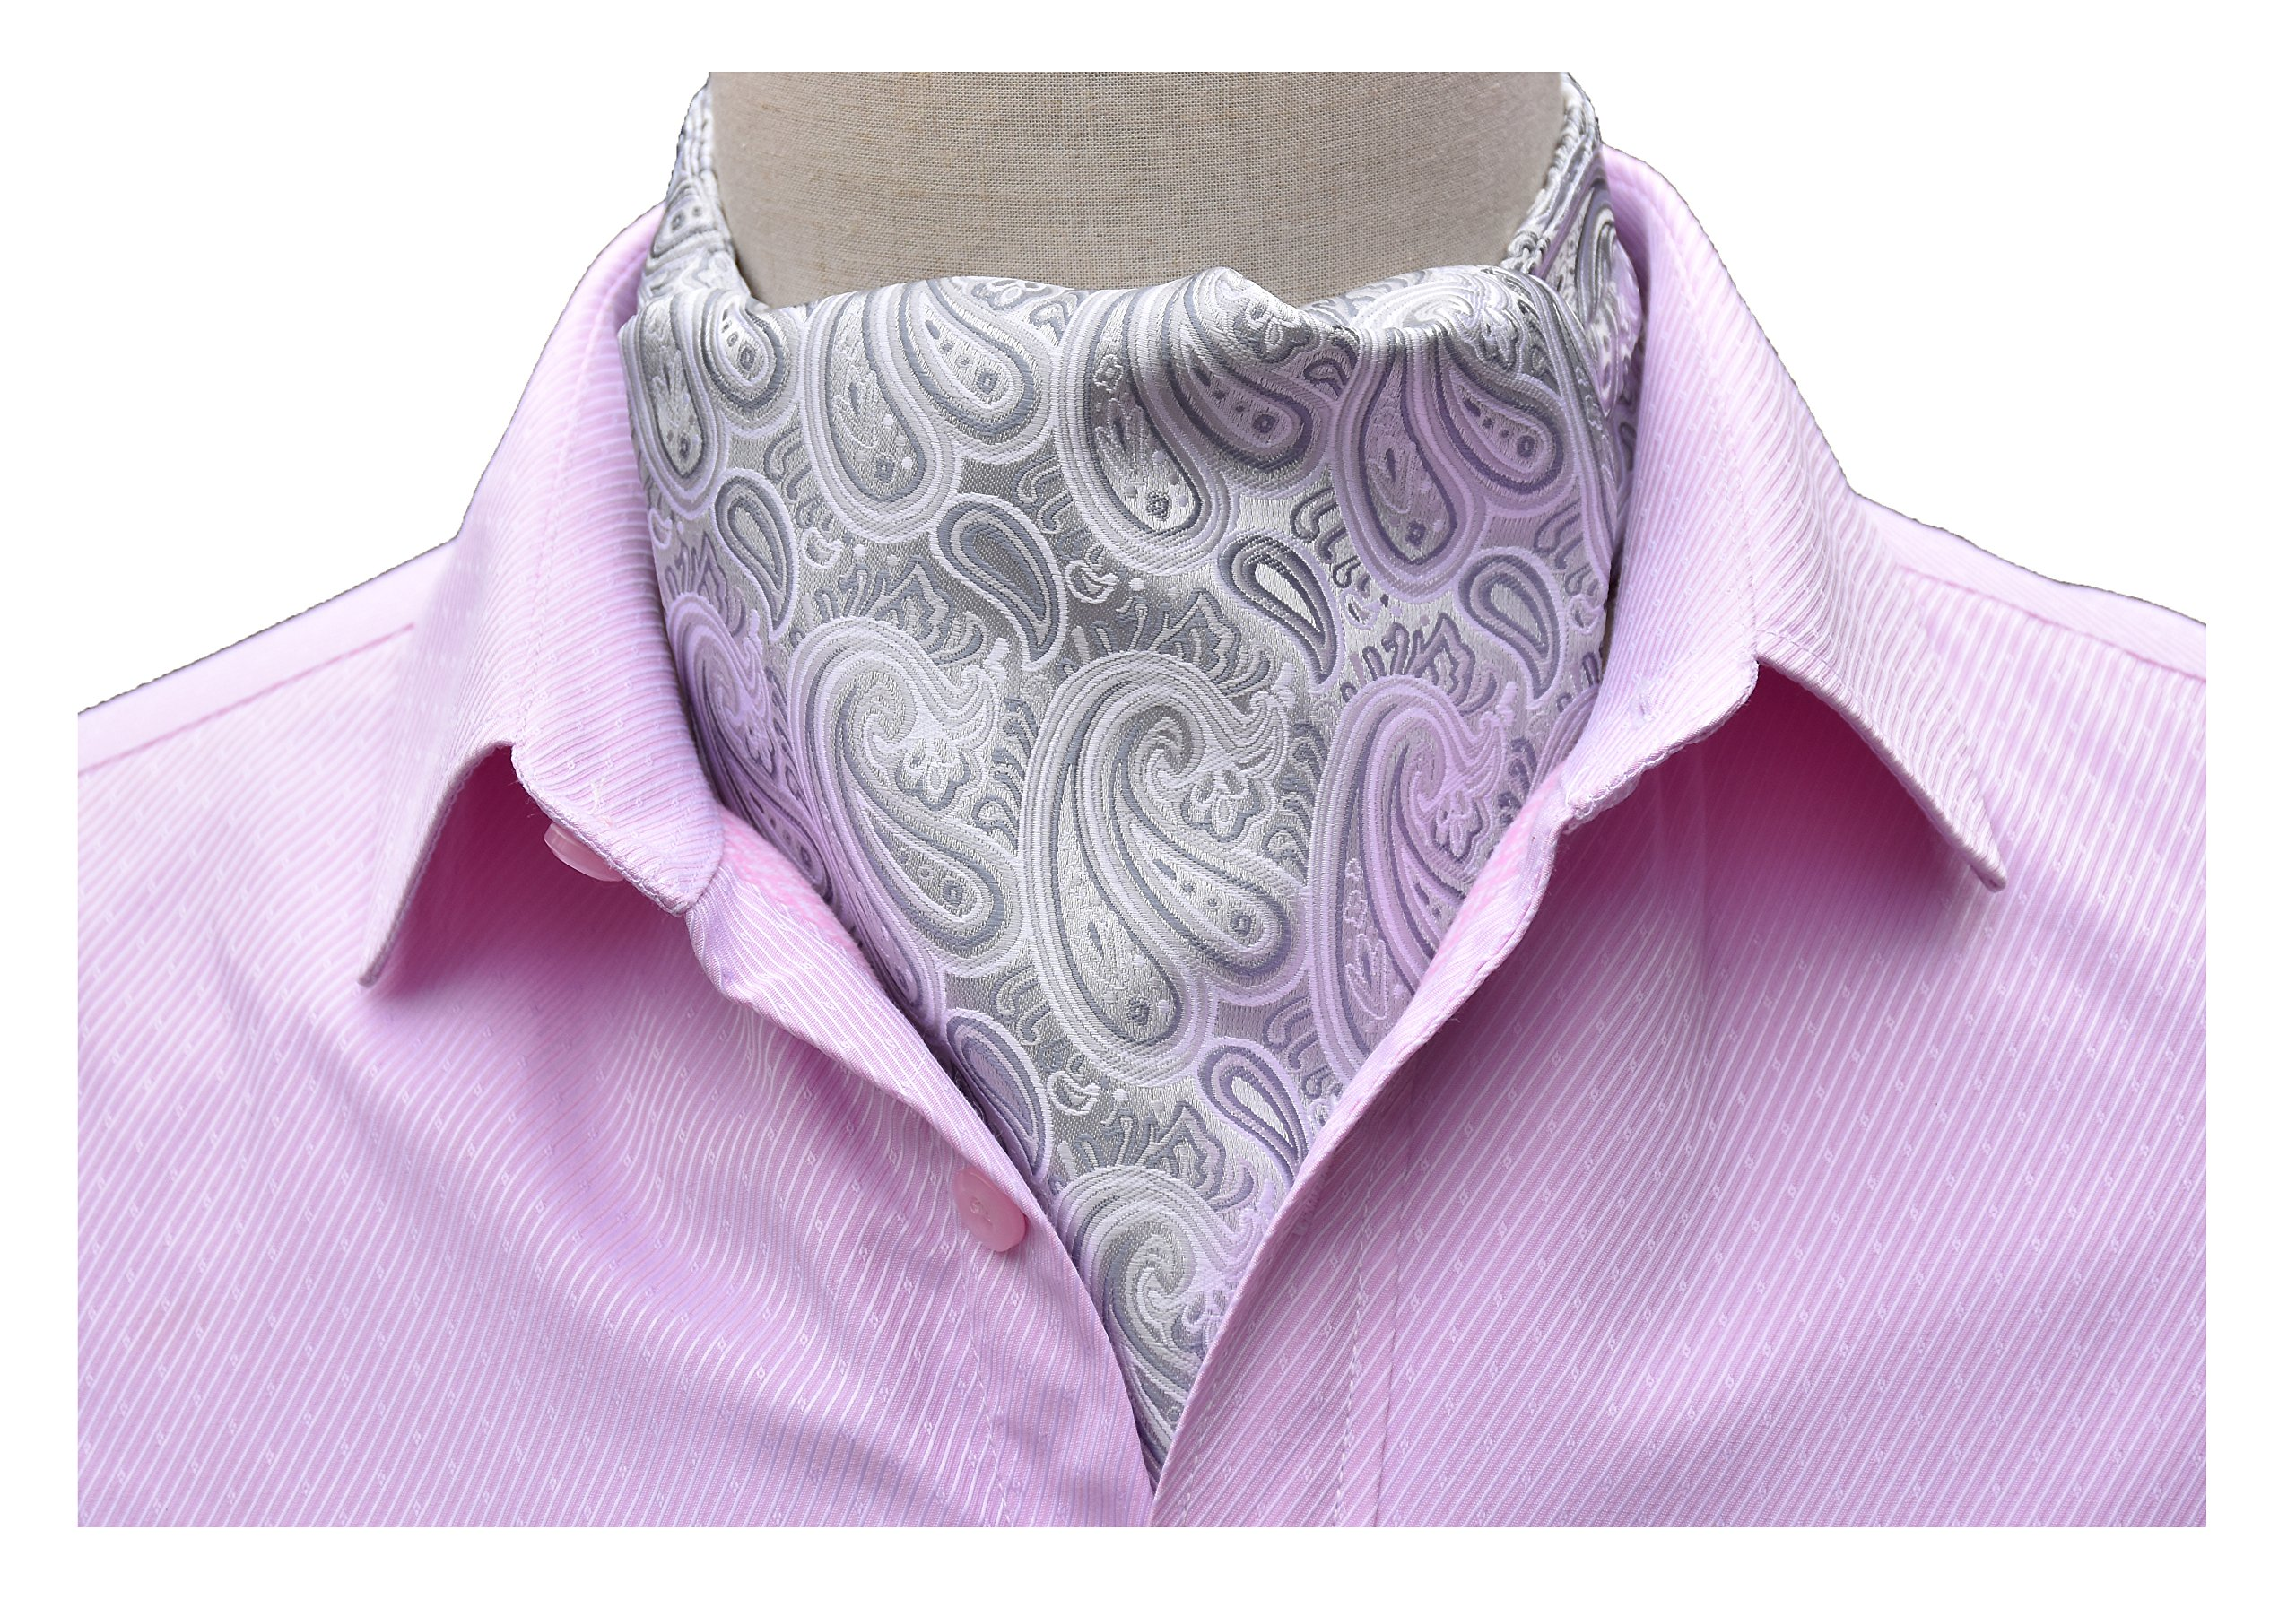 Men's Silver White Silk Patterned Spring Summer Wedding Cravat Ties Woven Ascot